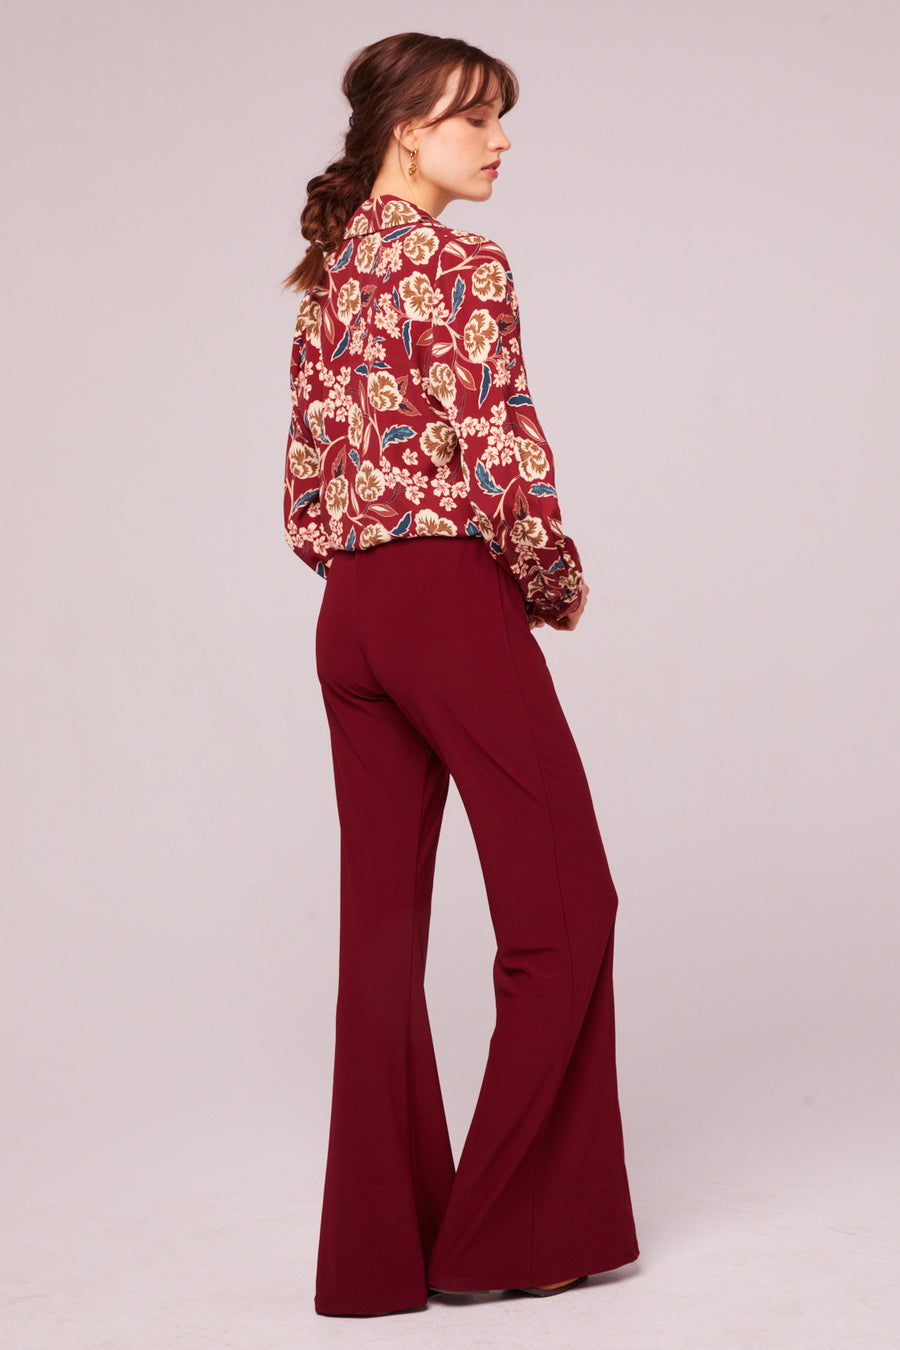 Imperial Burgundy Cropped Floral Tie Top Master